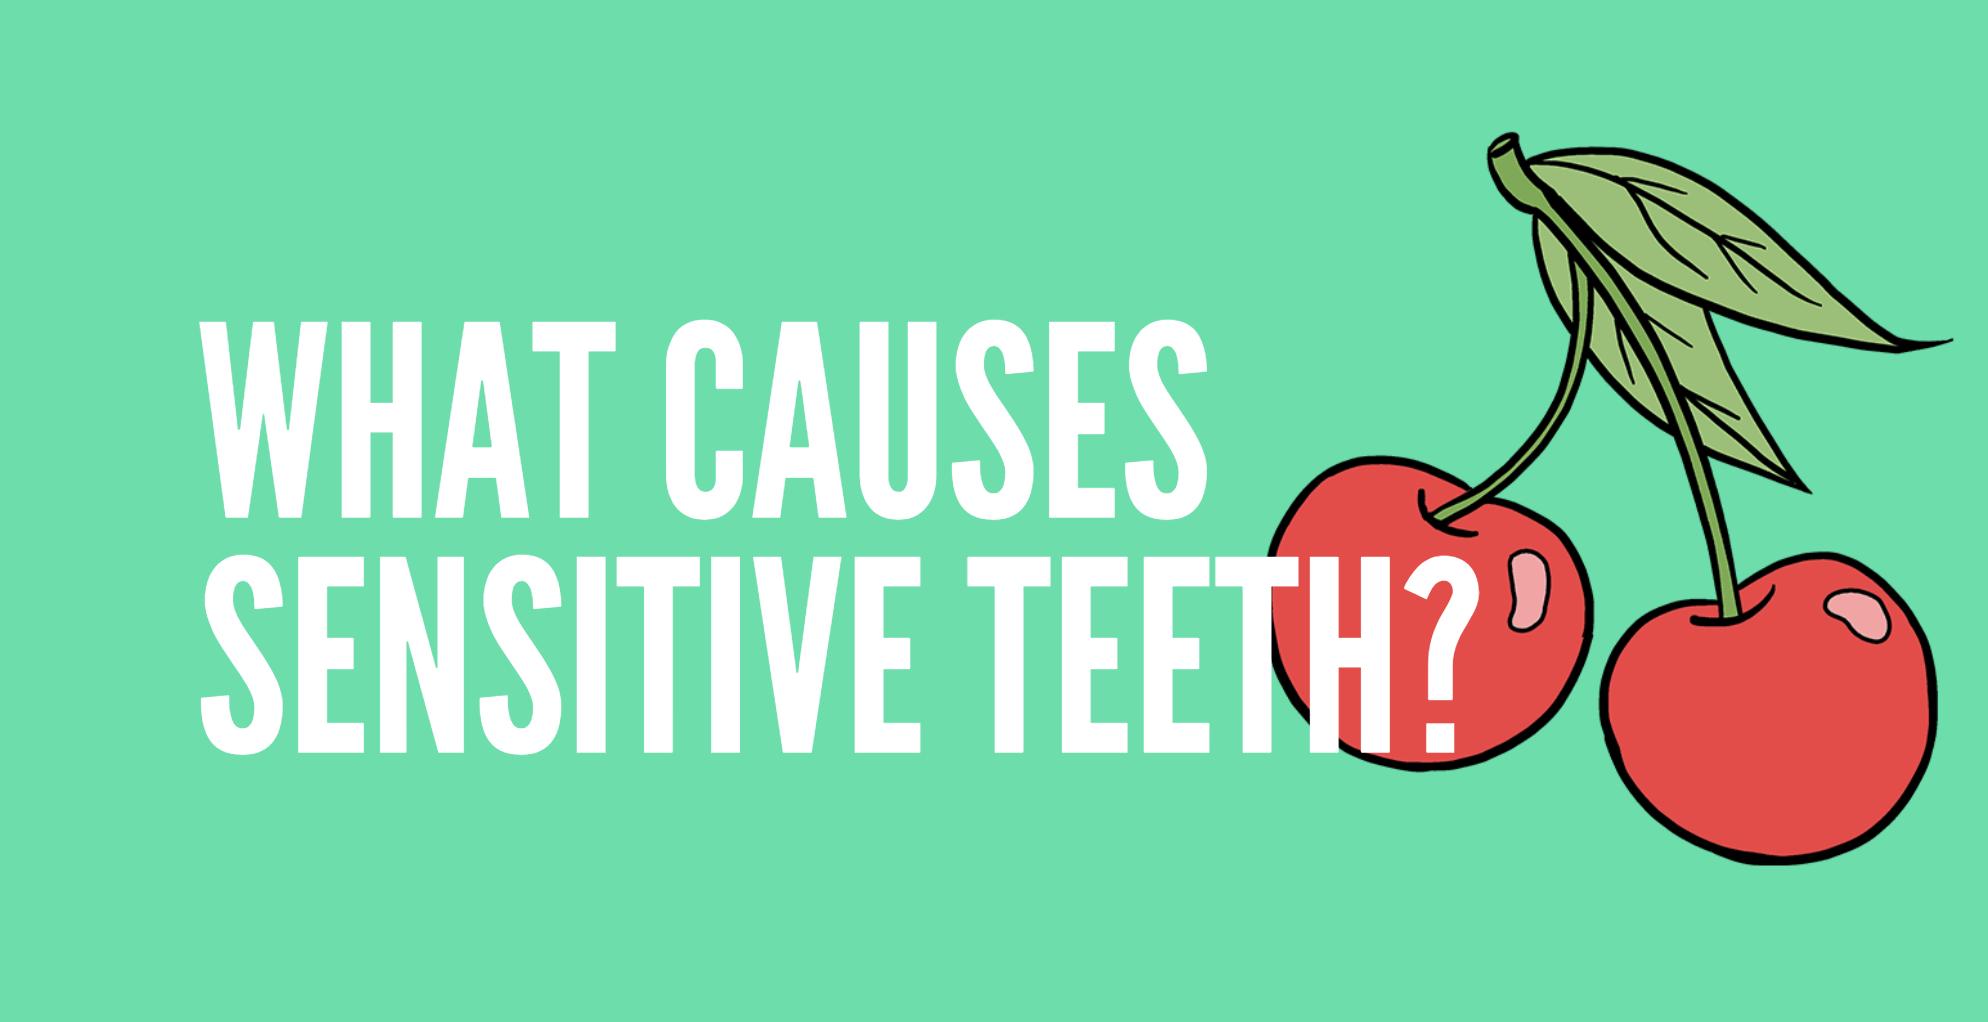 What causes sensitive teeth?